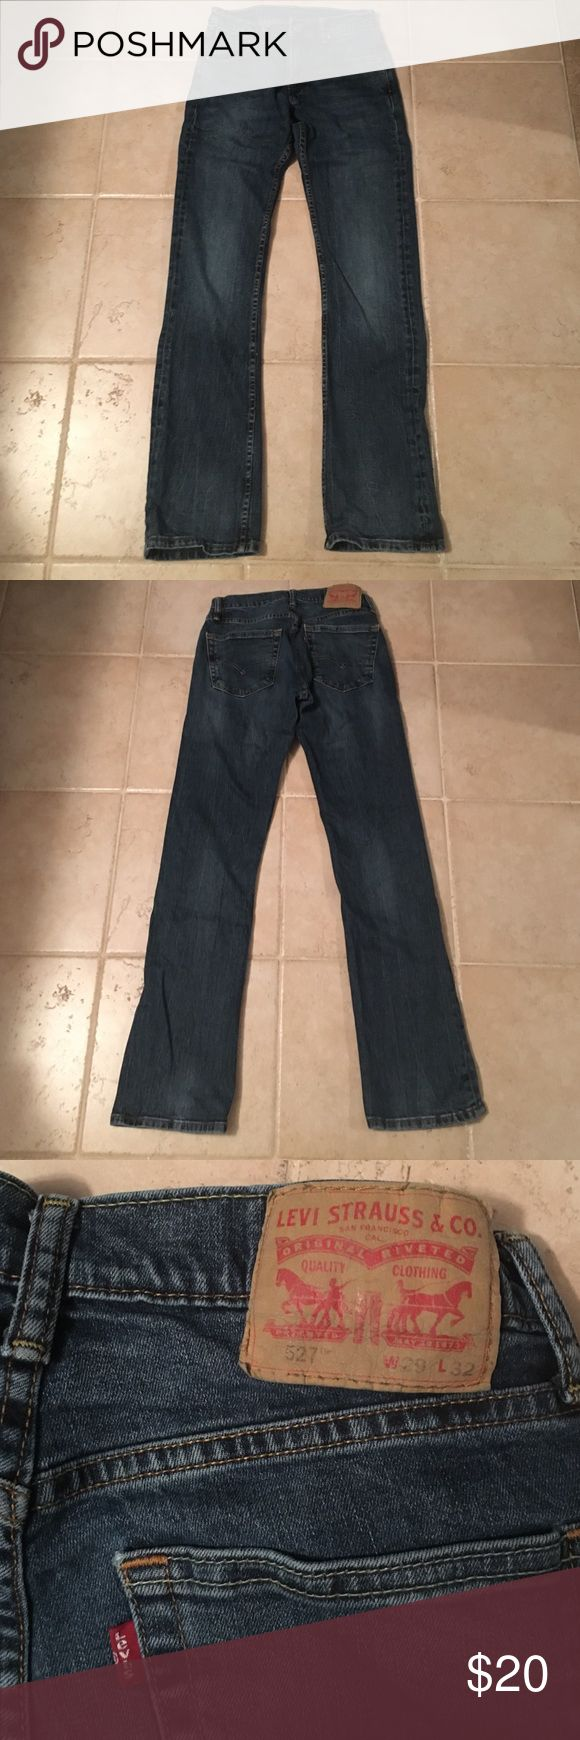 Men's boot cut  jeans Levi's waist 29, length 32 slim boot cut men's jeans. My husband wore these a few times, but switched to Carhart jeans. These jeans are in perfect condition. Levi's Jeans Bootcut